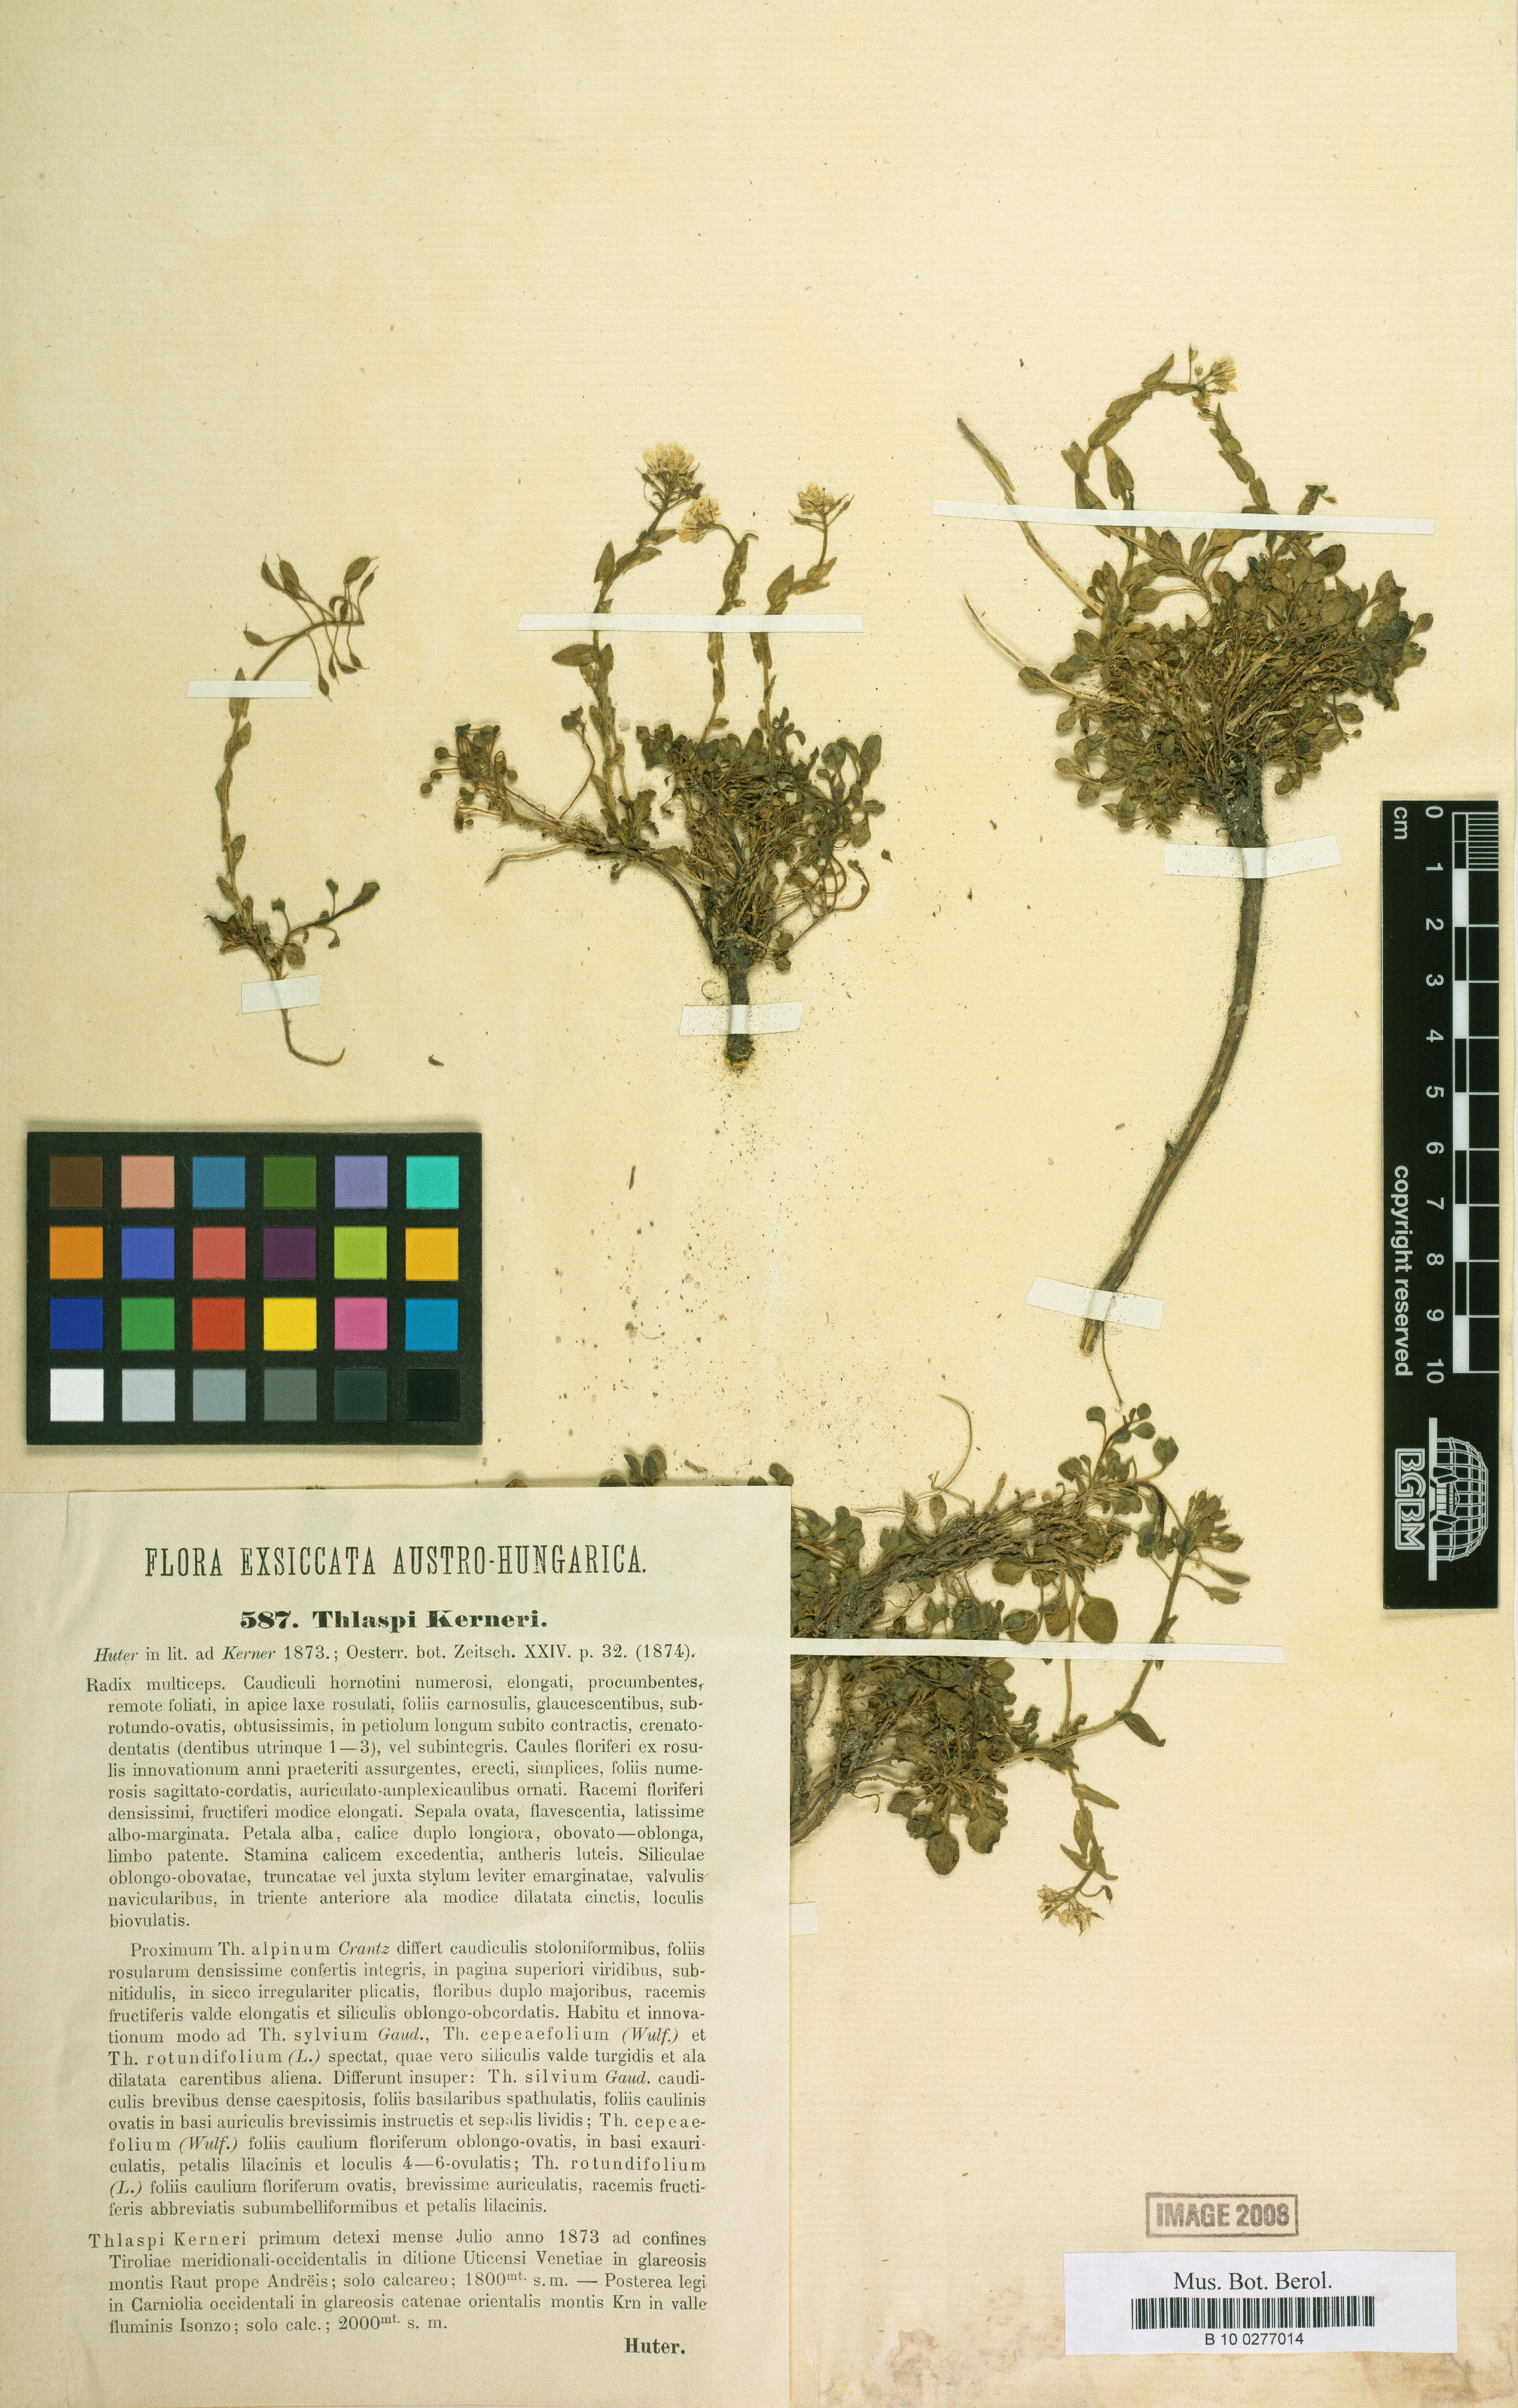 © Botanic Garden and Botanical Museum Berlin-Dahlem, Freie Universität Berlin<br>by Röpert, D. (Ed.) 2000- (continuously updated): Digital specimen images at the Herbarium Berolinense. - Published on the Internet http://ww2.bgbm.org/herbarium/ (Barcode: B 10 0277014 / ImageId: 278018) [accessed 26-Nov-11].<br>